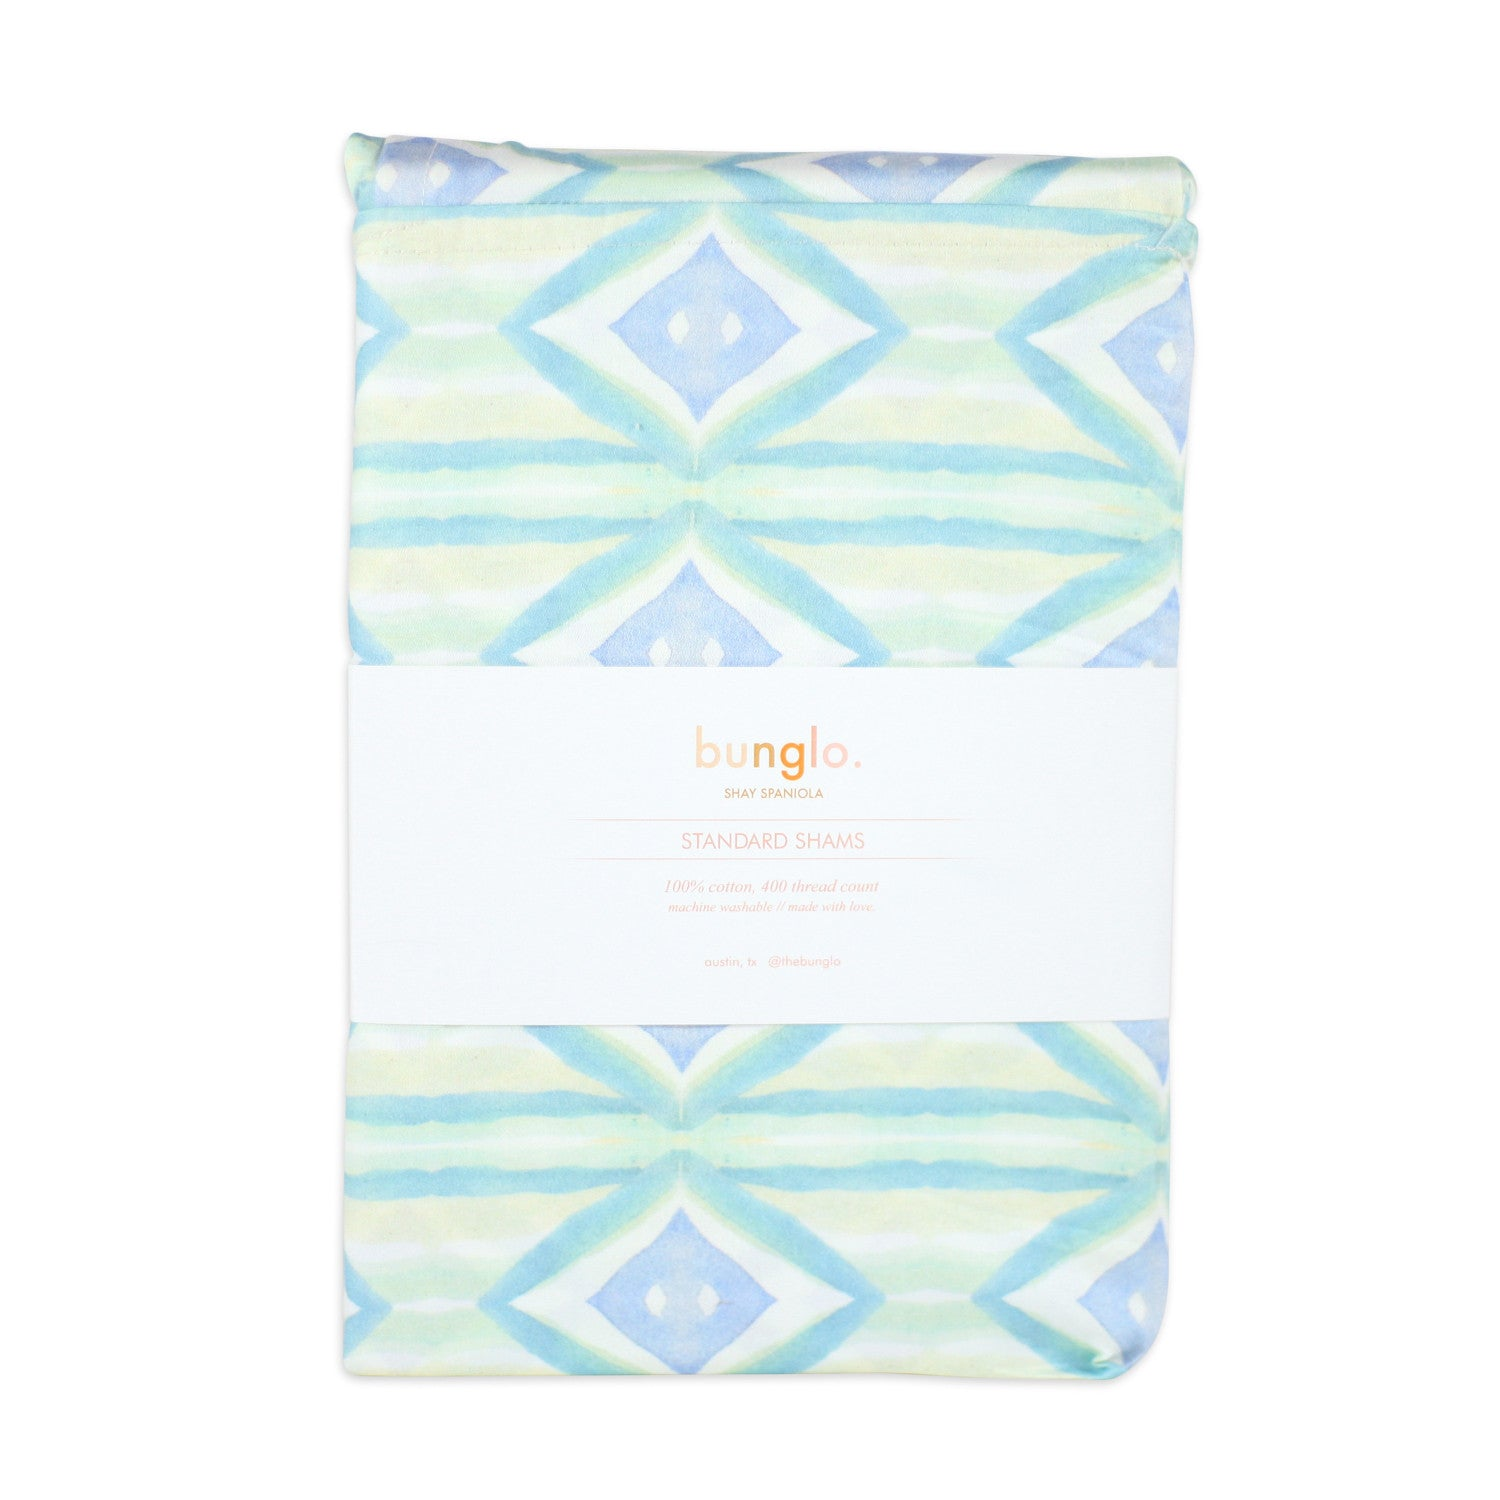 RIVER duvet - bunglo by shay spaniola - 4